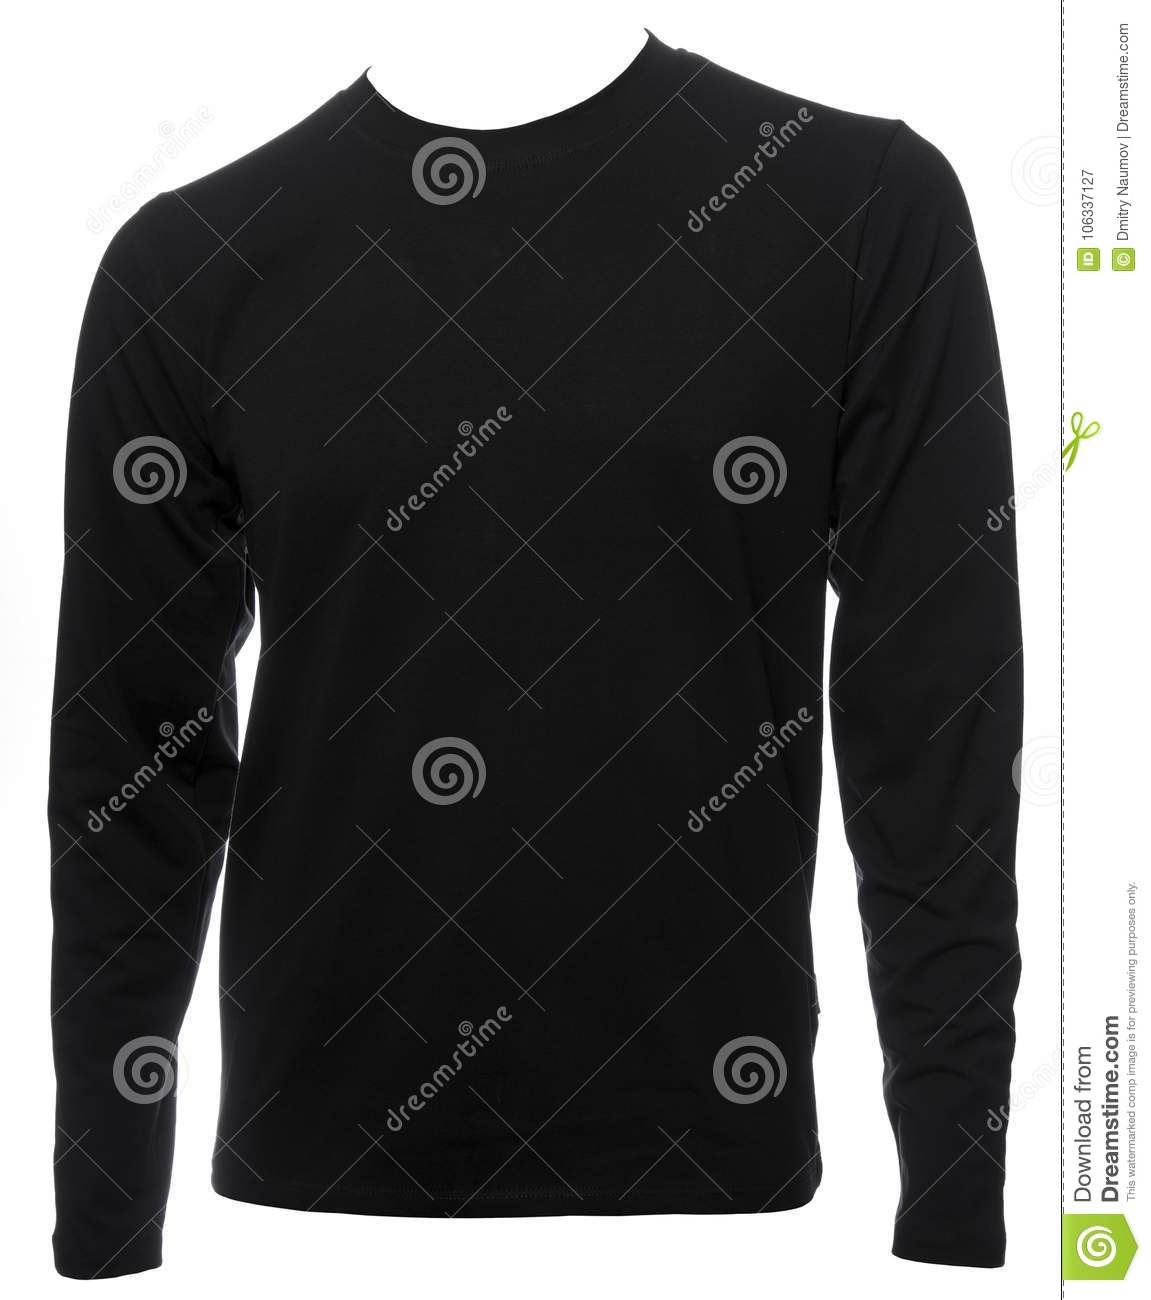 Black Longsleeve Cotton Tshirt Template Isolated Stock